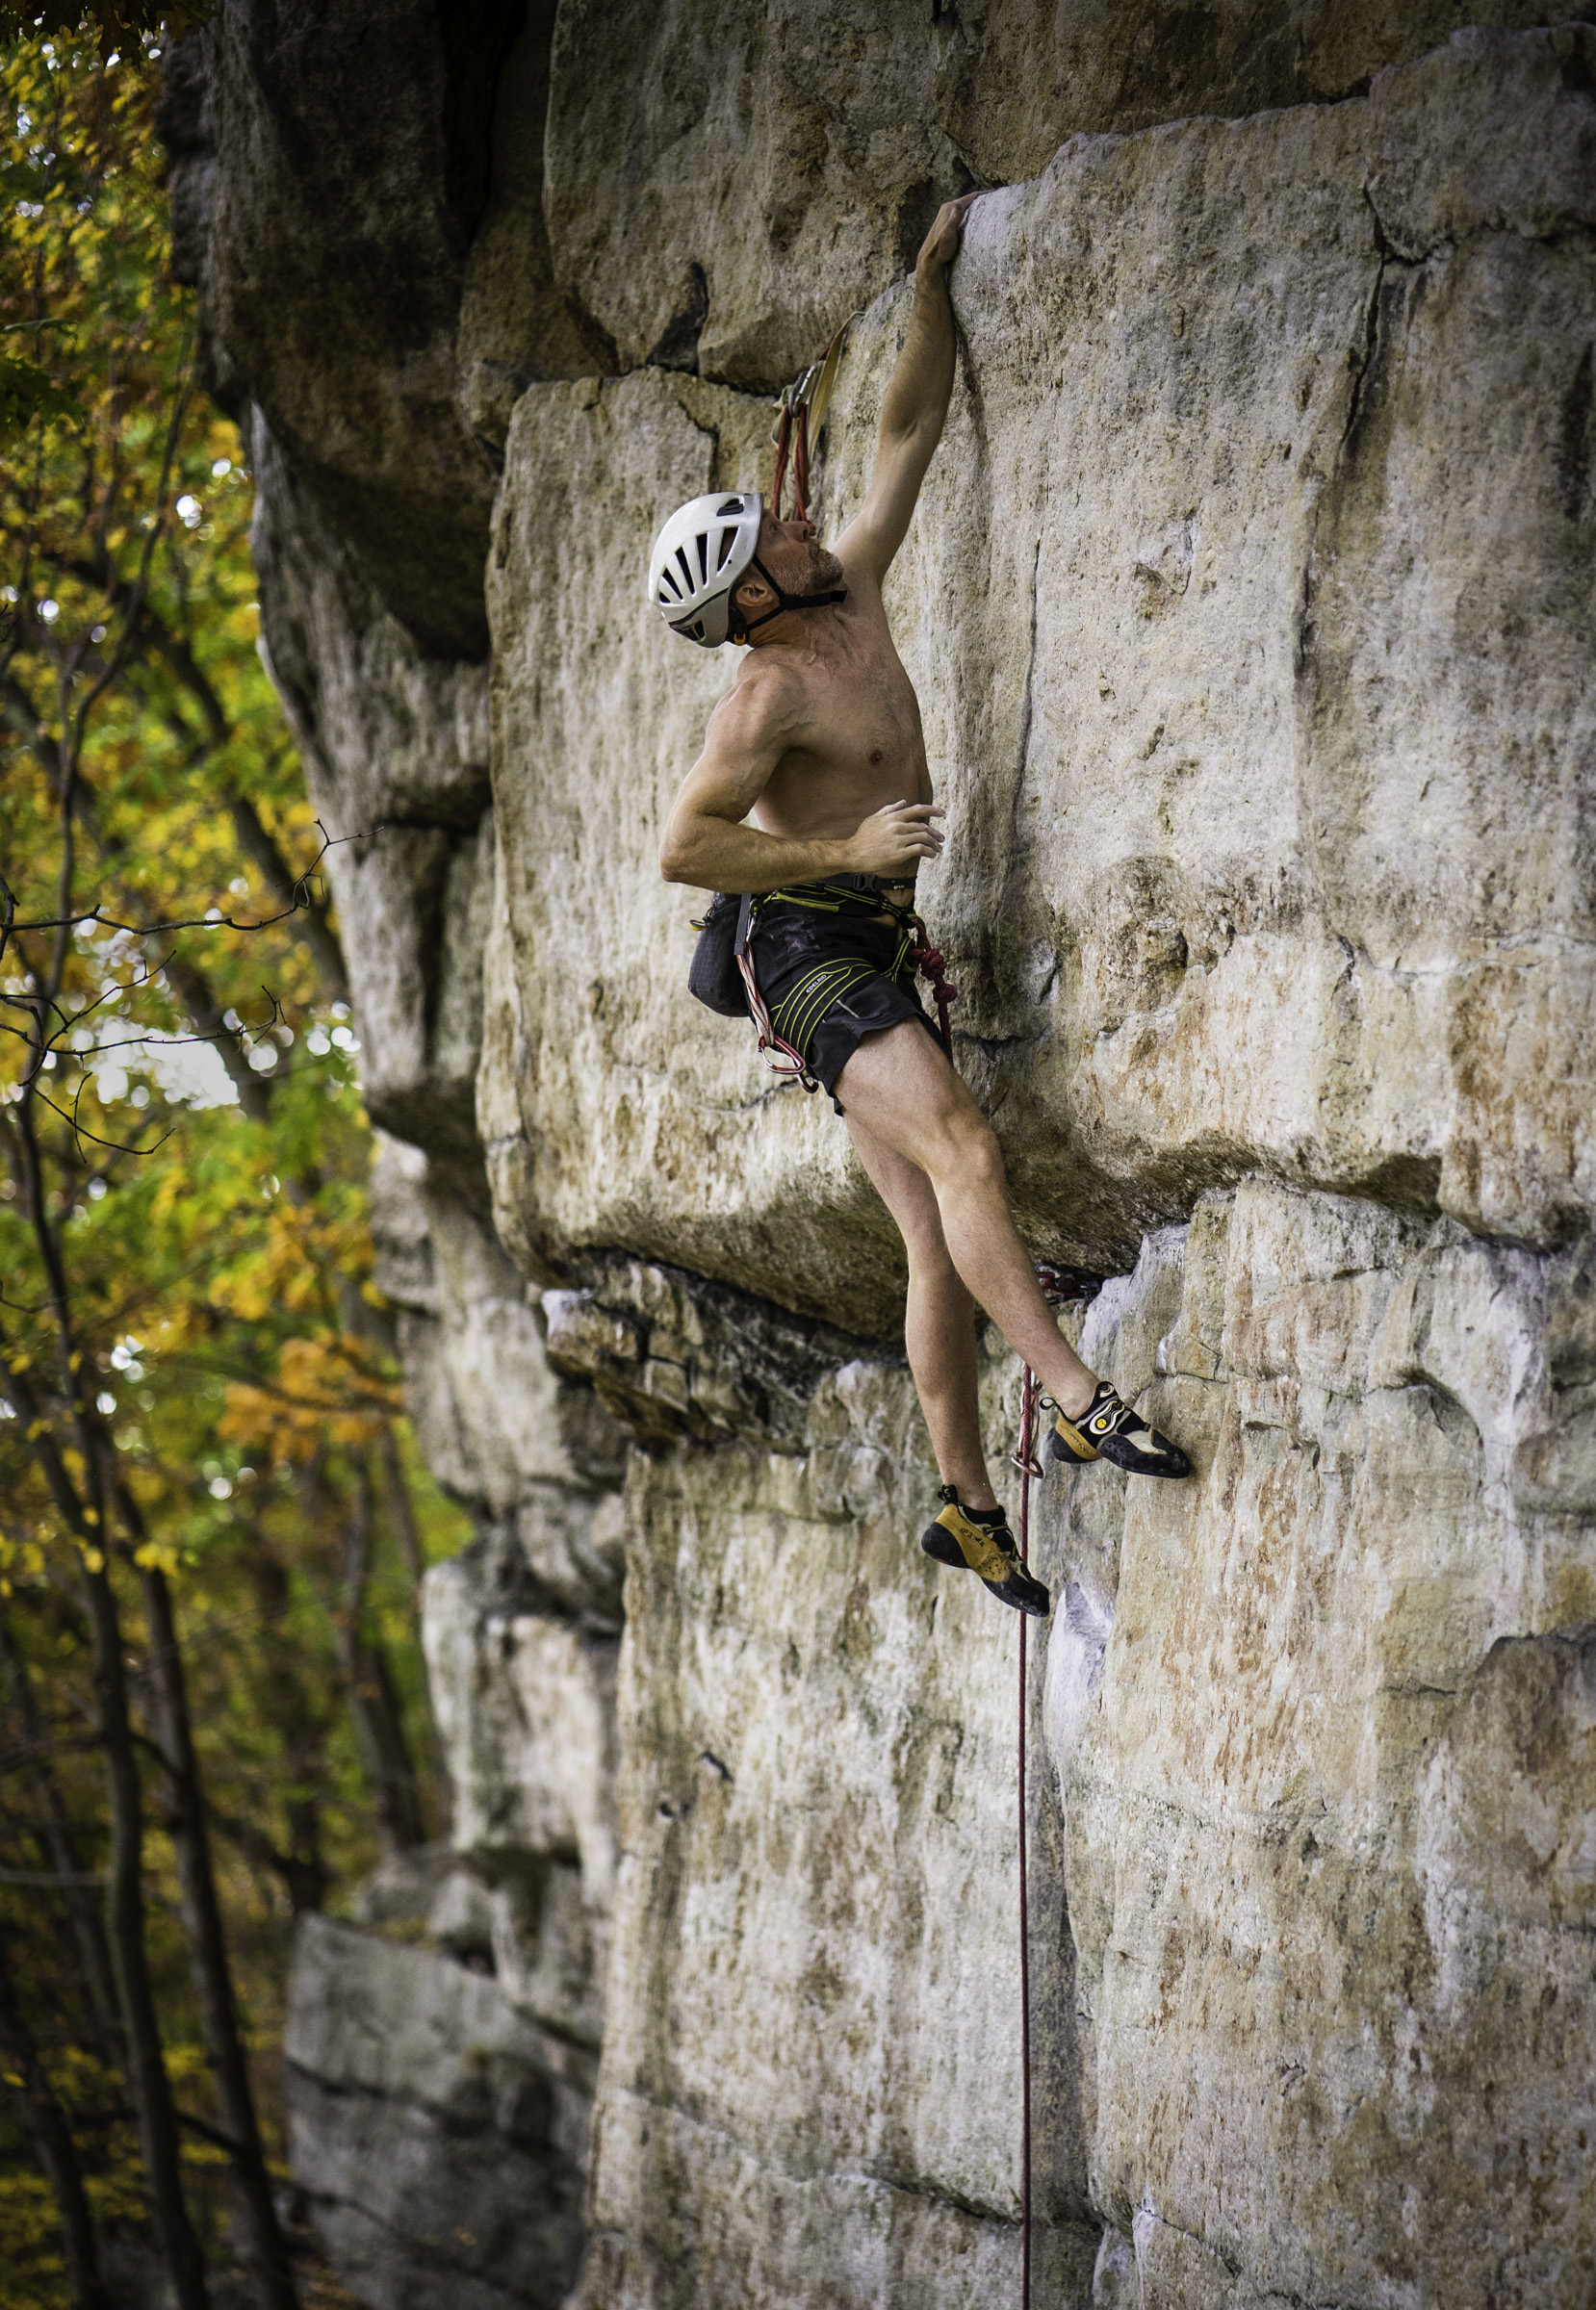 Brian Rossa on The Sting at the Gunks